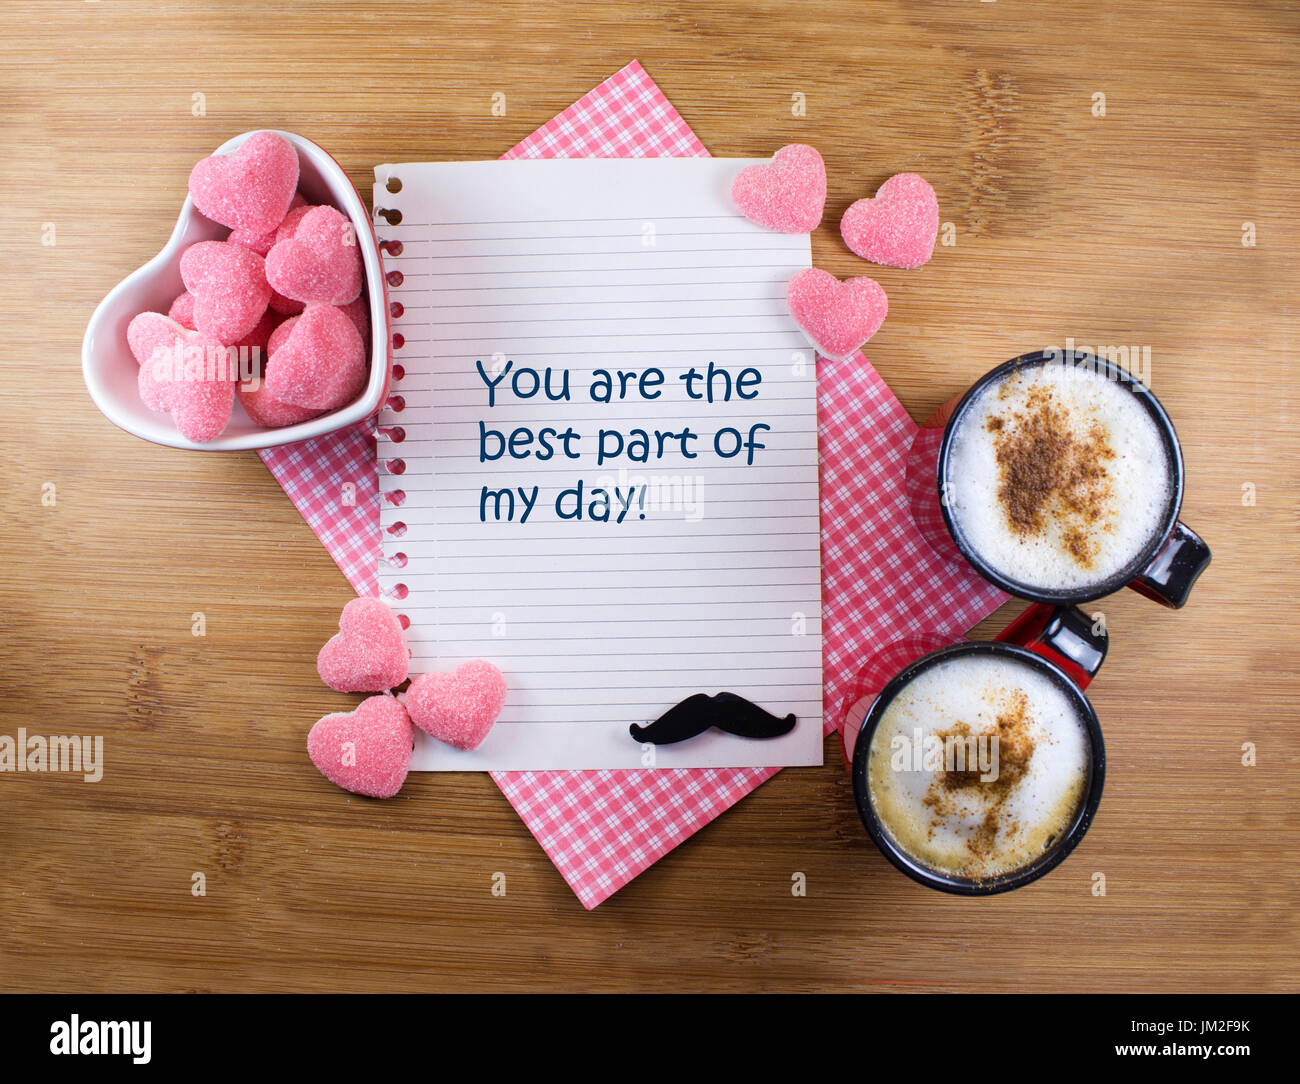 Cute Romantic Background With Good Morning Message Stock Photo